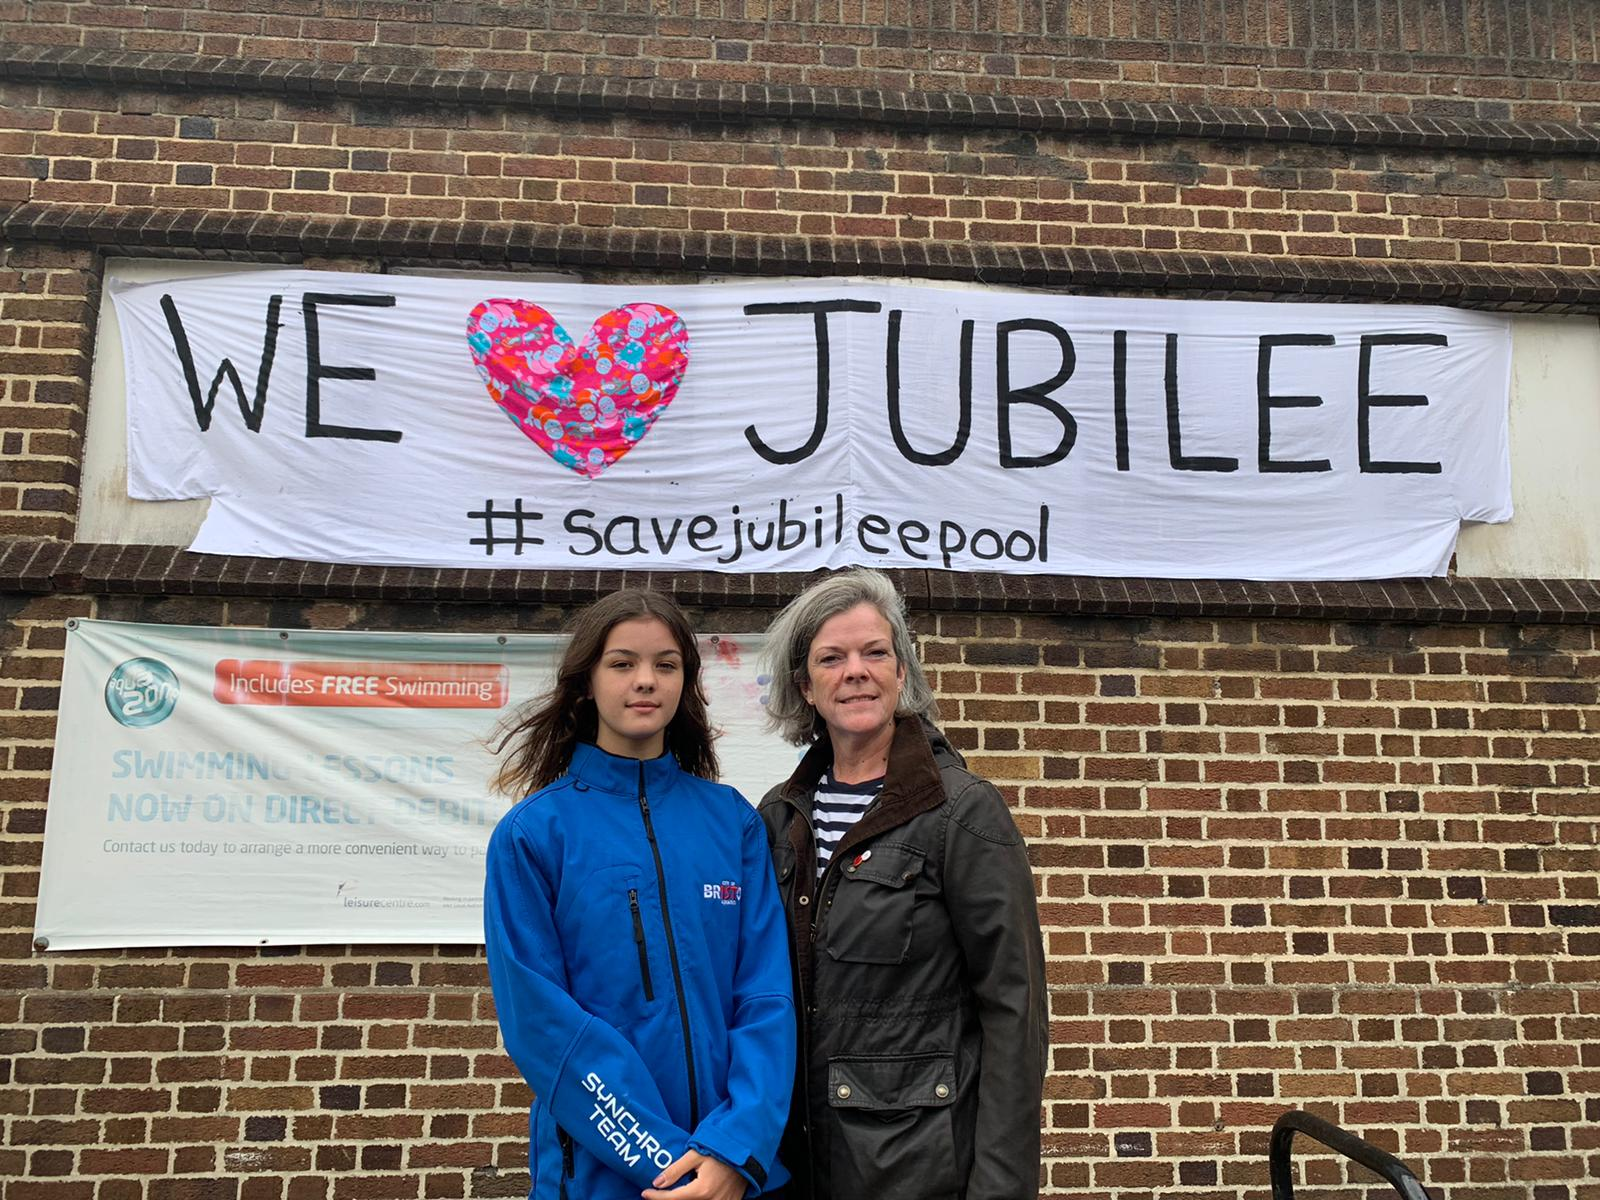 Voices of Jubilee swimmers